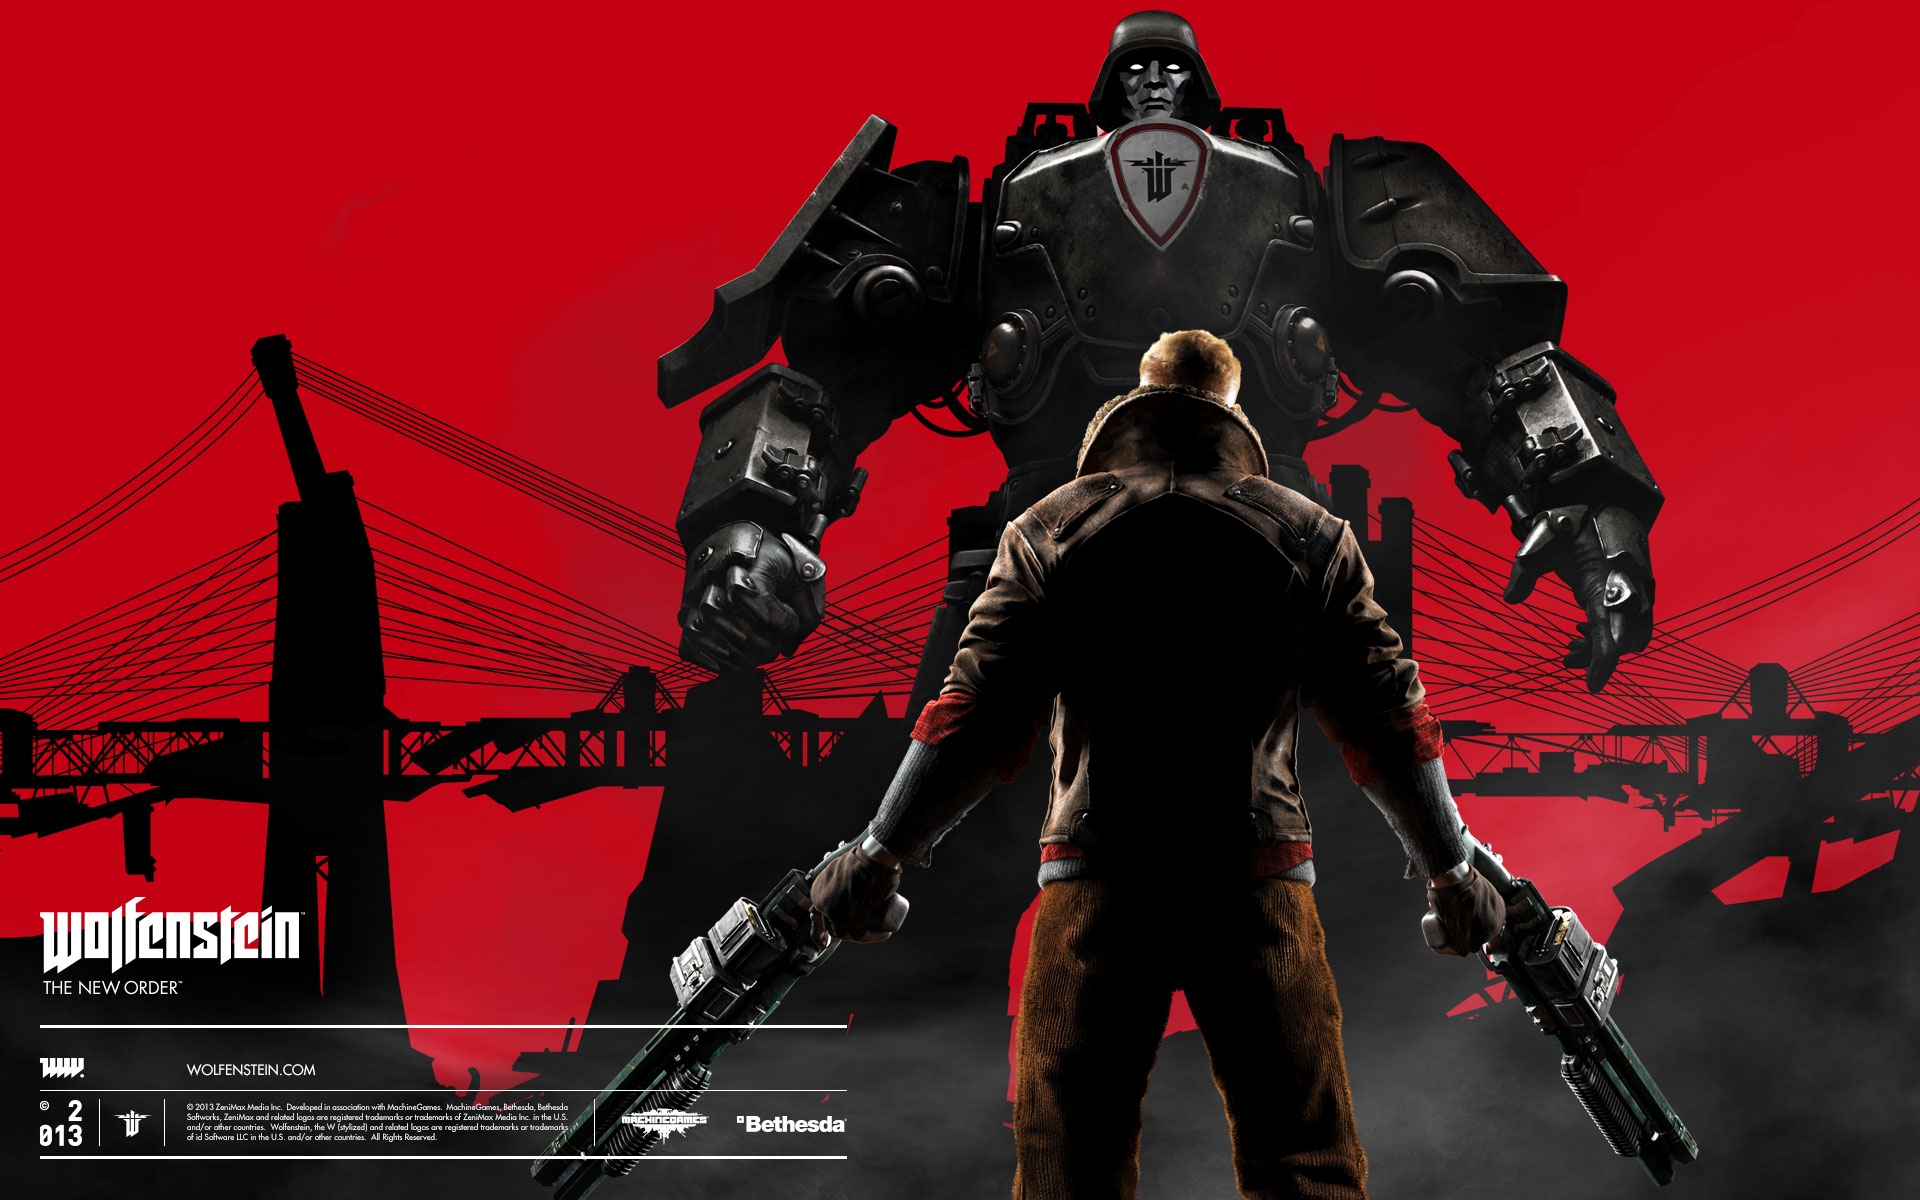 2014 Wolfenstein The New Order 718.85 Kb